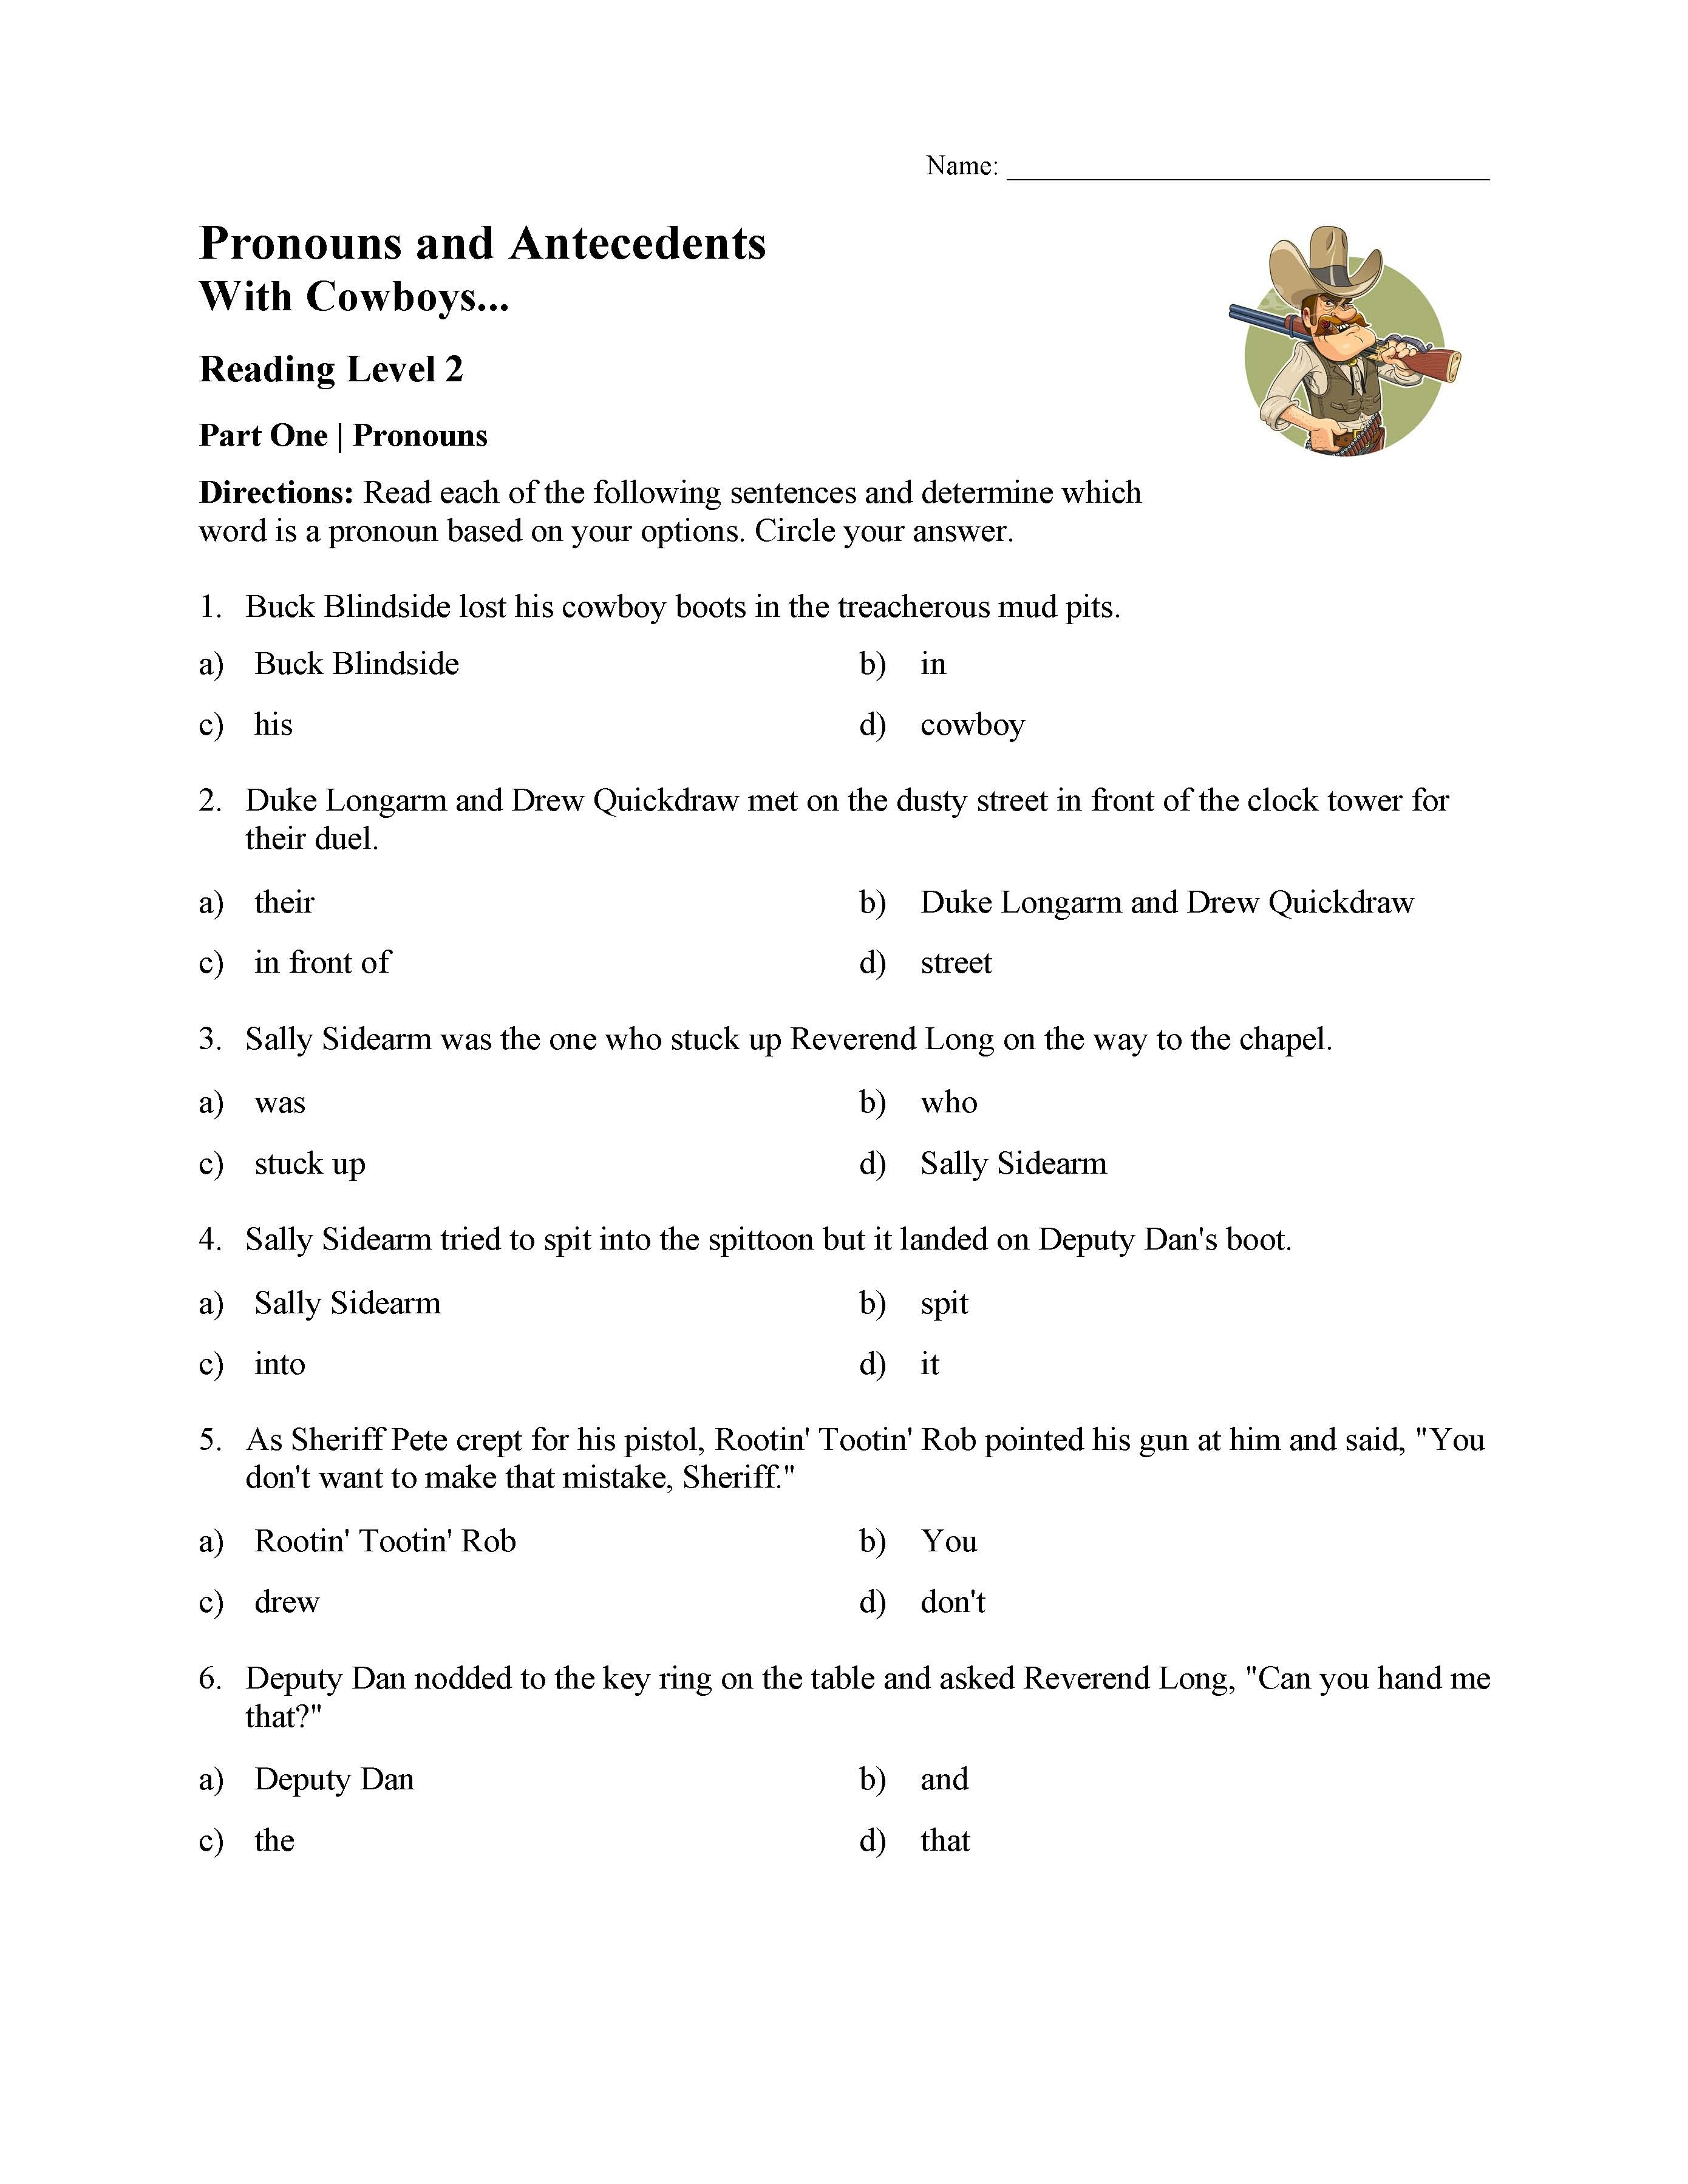 Worksheets Pronouns And Antecedents Worksheets pronoun and antecedent test with cowboys reading level 2 preview this is a image of the reading